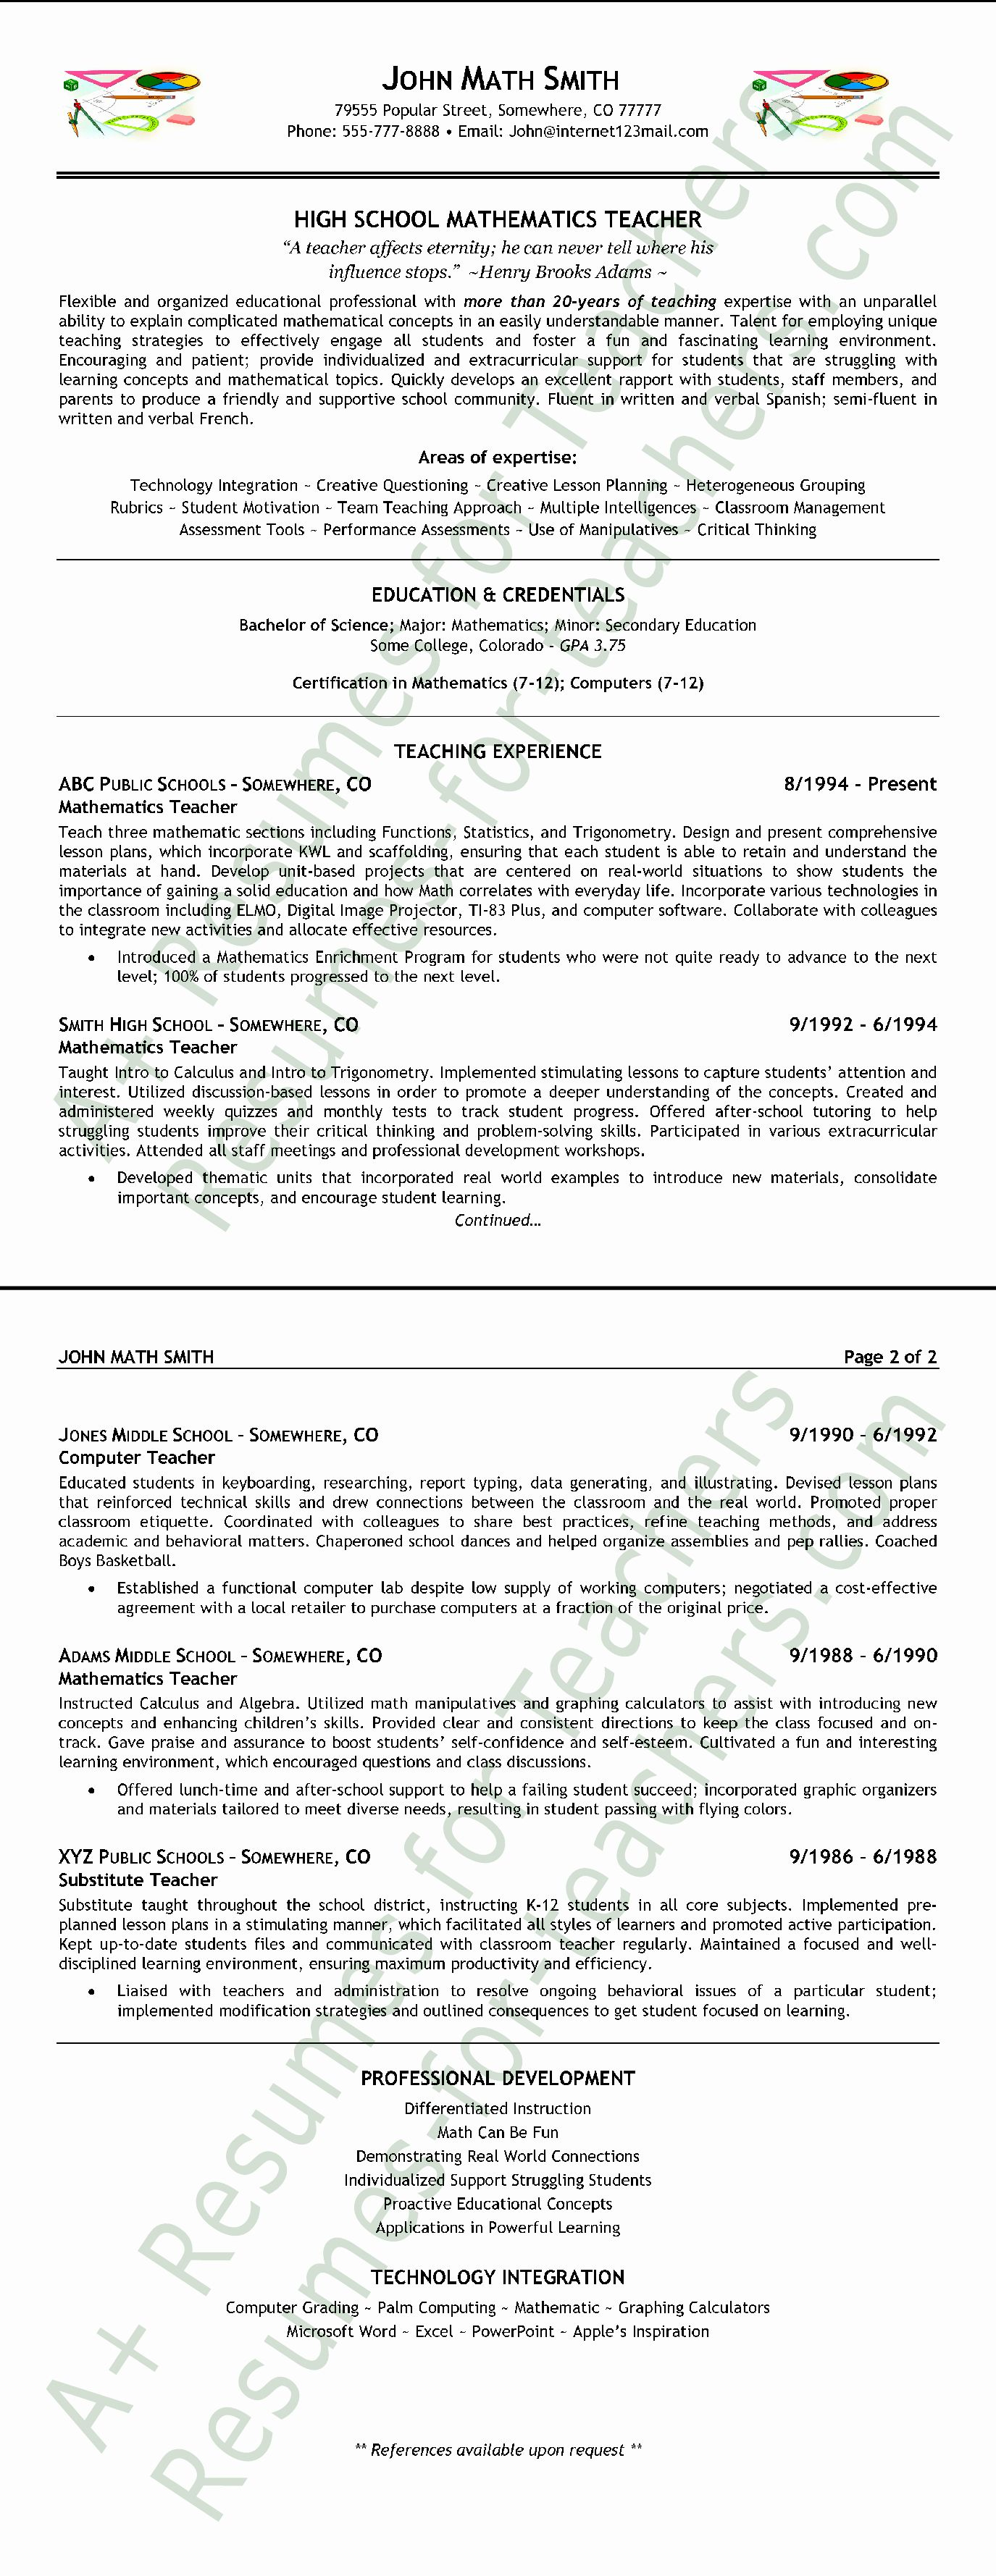 Math Teacher Resume Examples Elegant High School